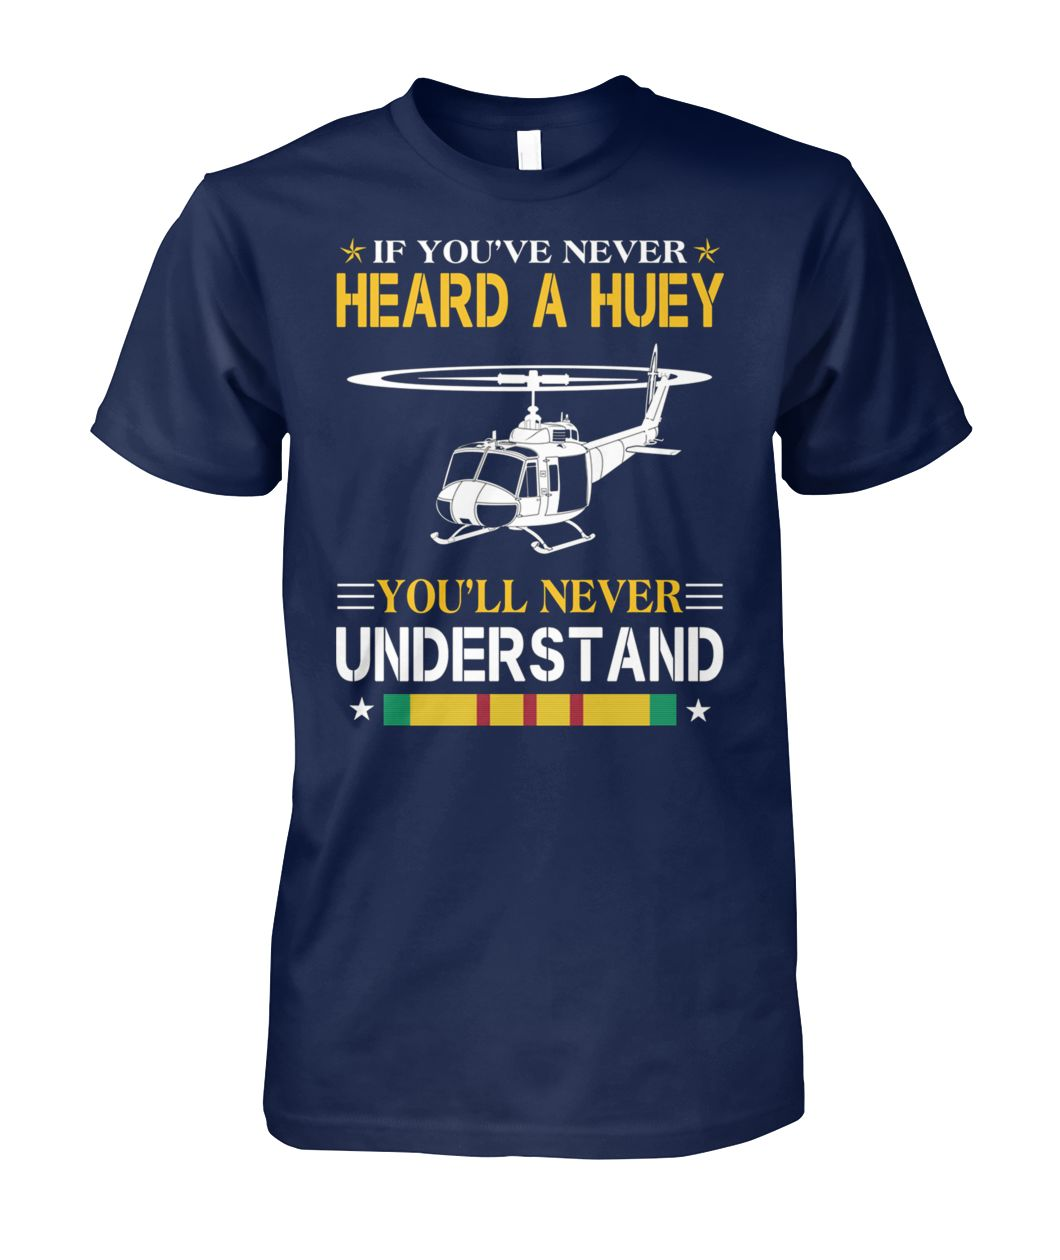 Air force if you've never heard a huey you'll never understand unisex cotton tee